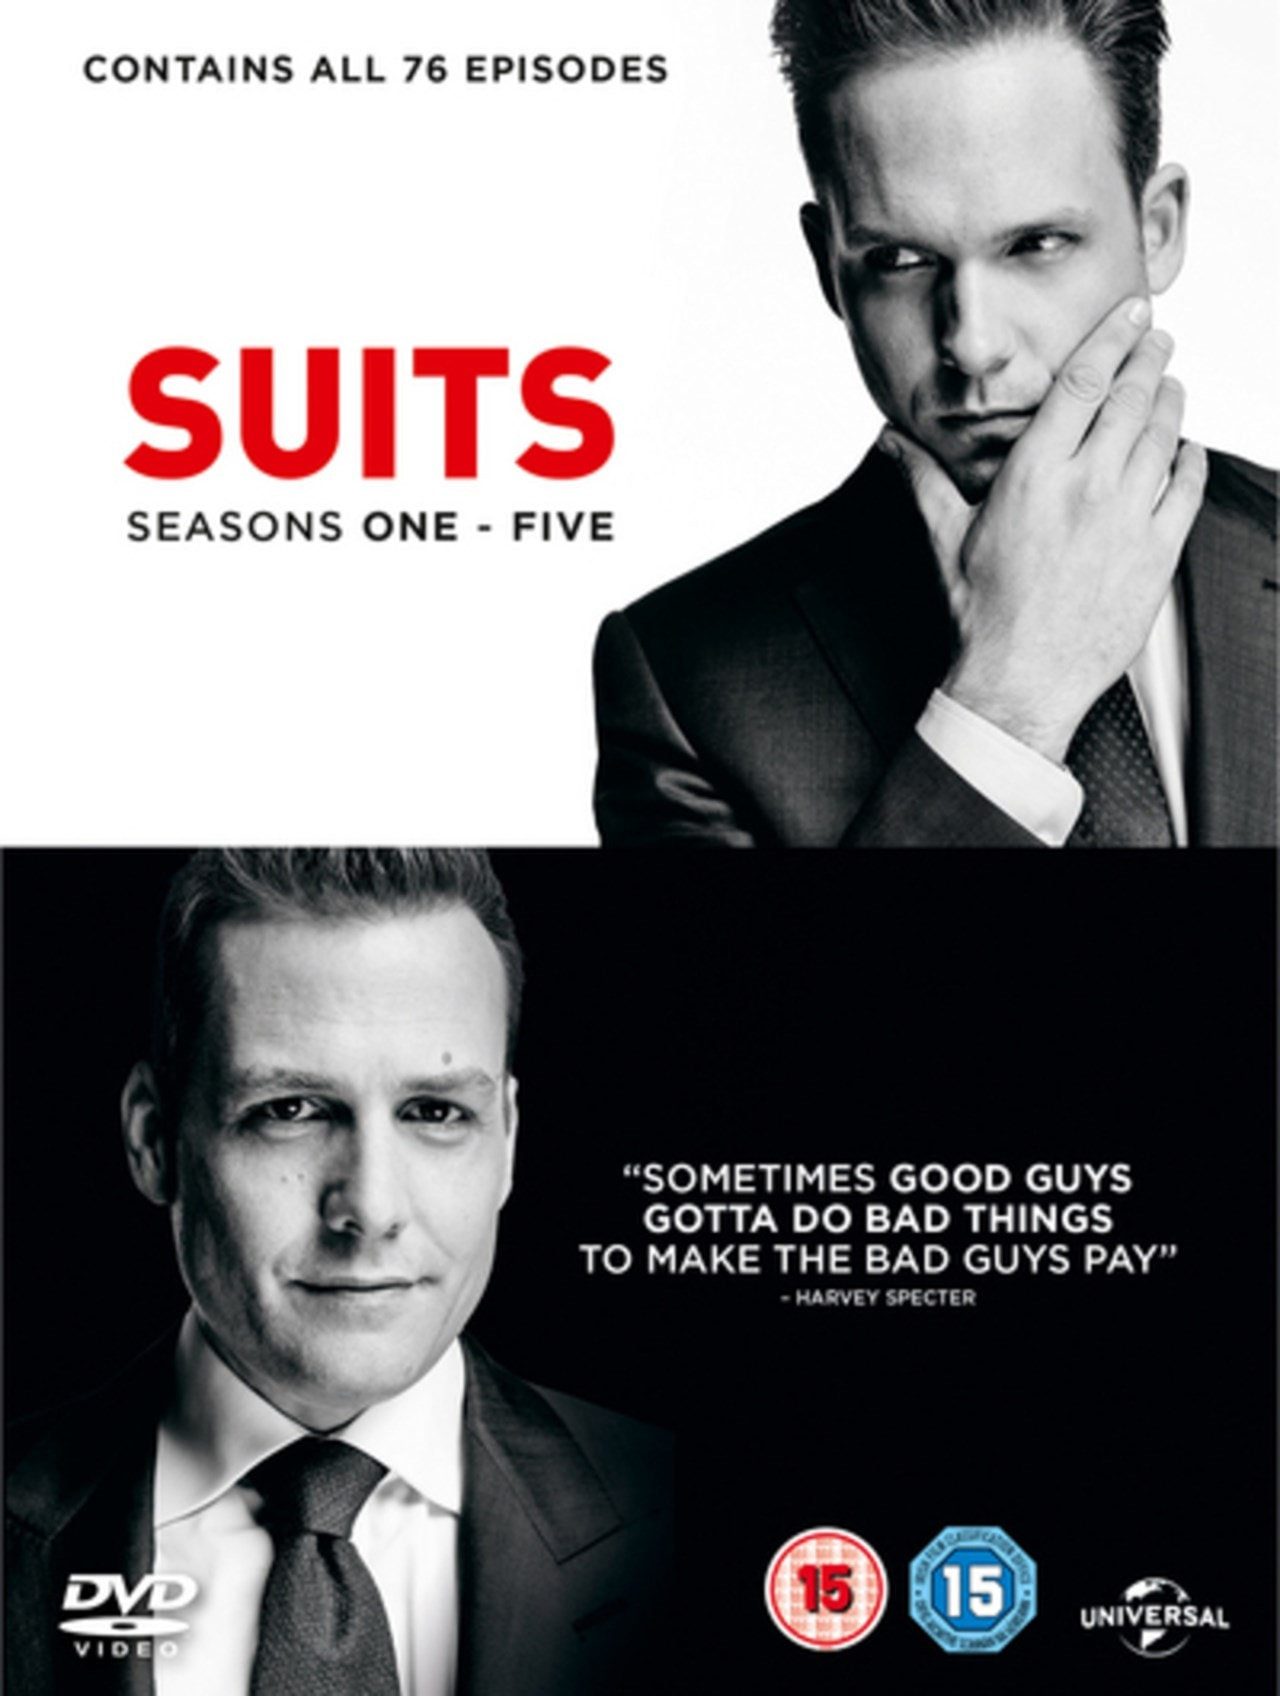 Suits: Seasons One - Five - 1